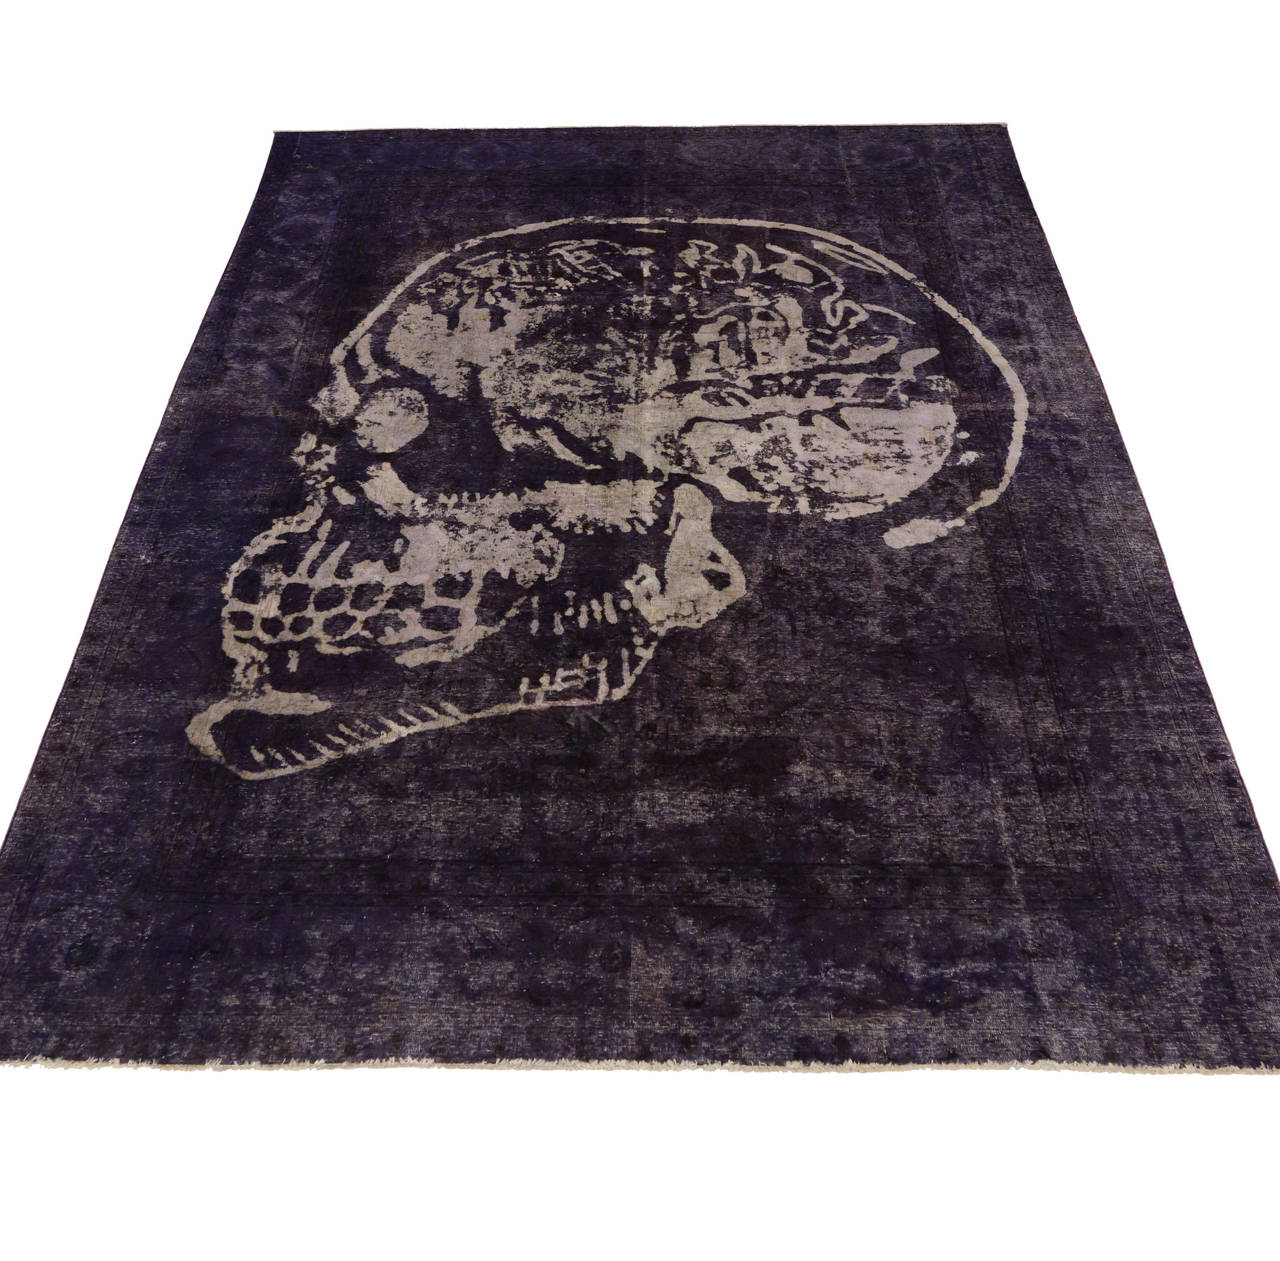 Vintage Persian Tabriz Rug Overdyed With Skull Design At